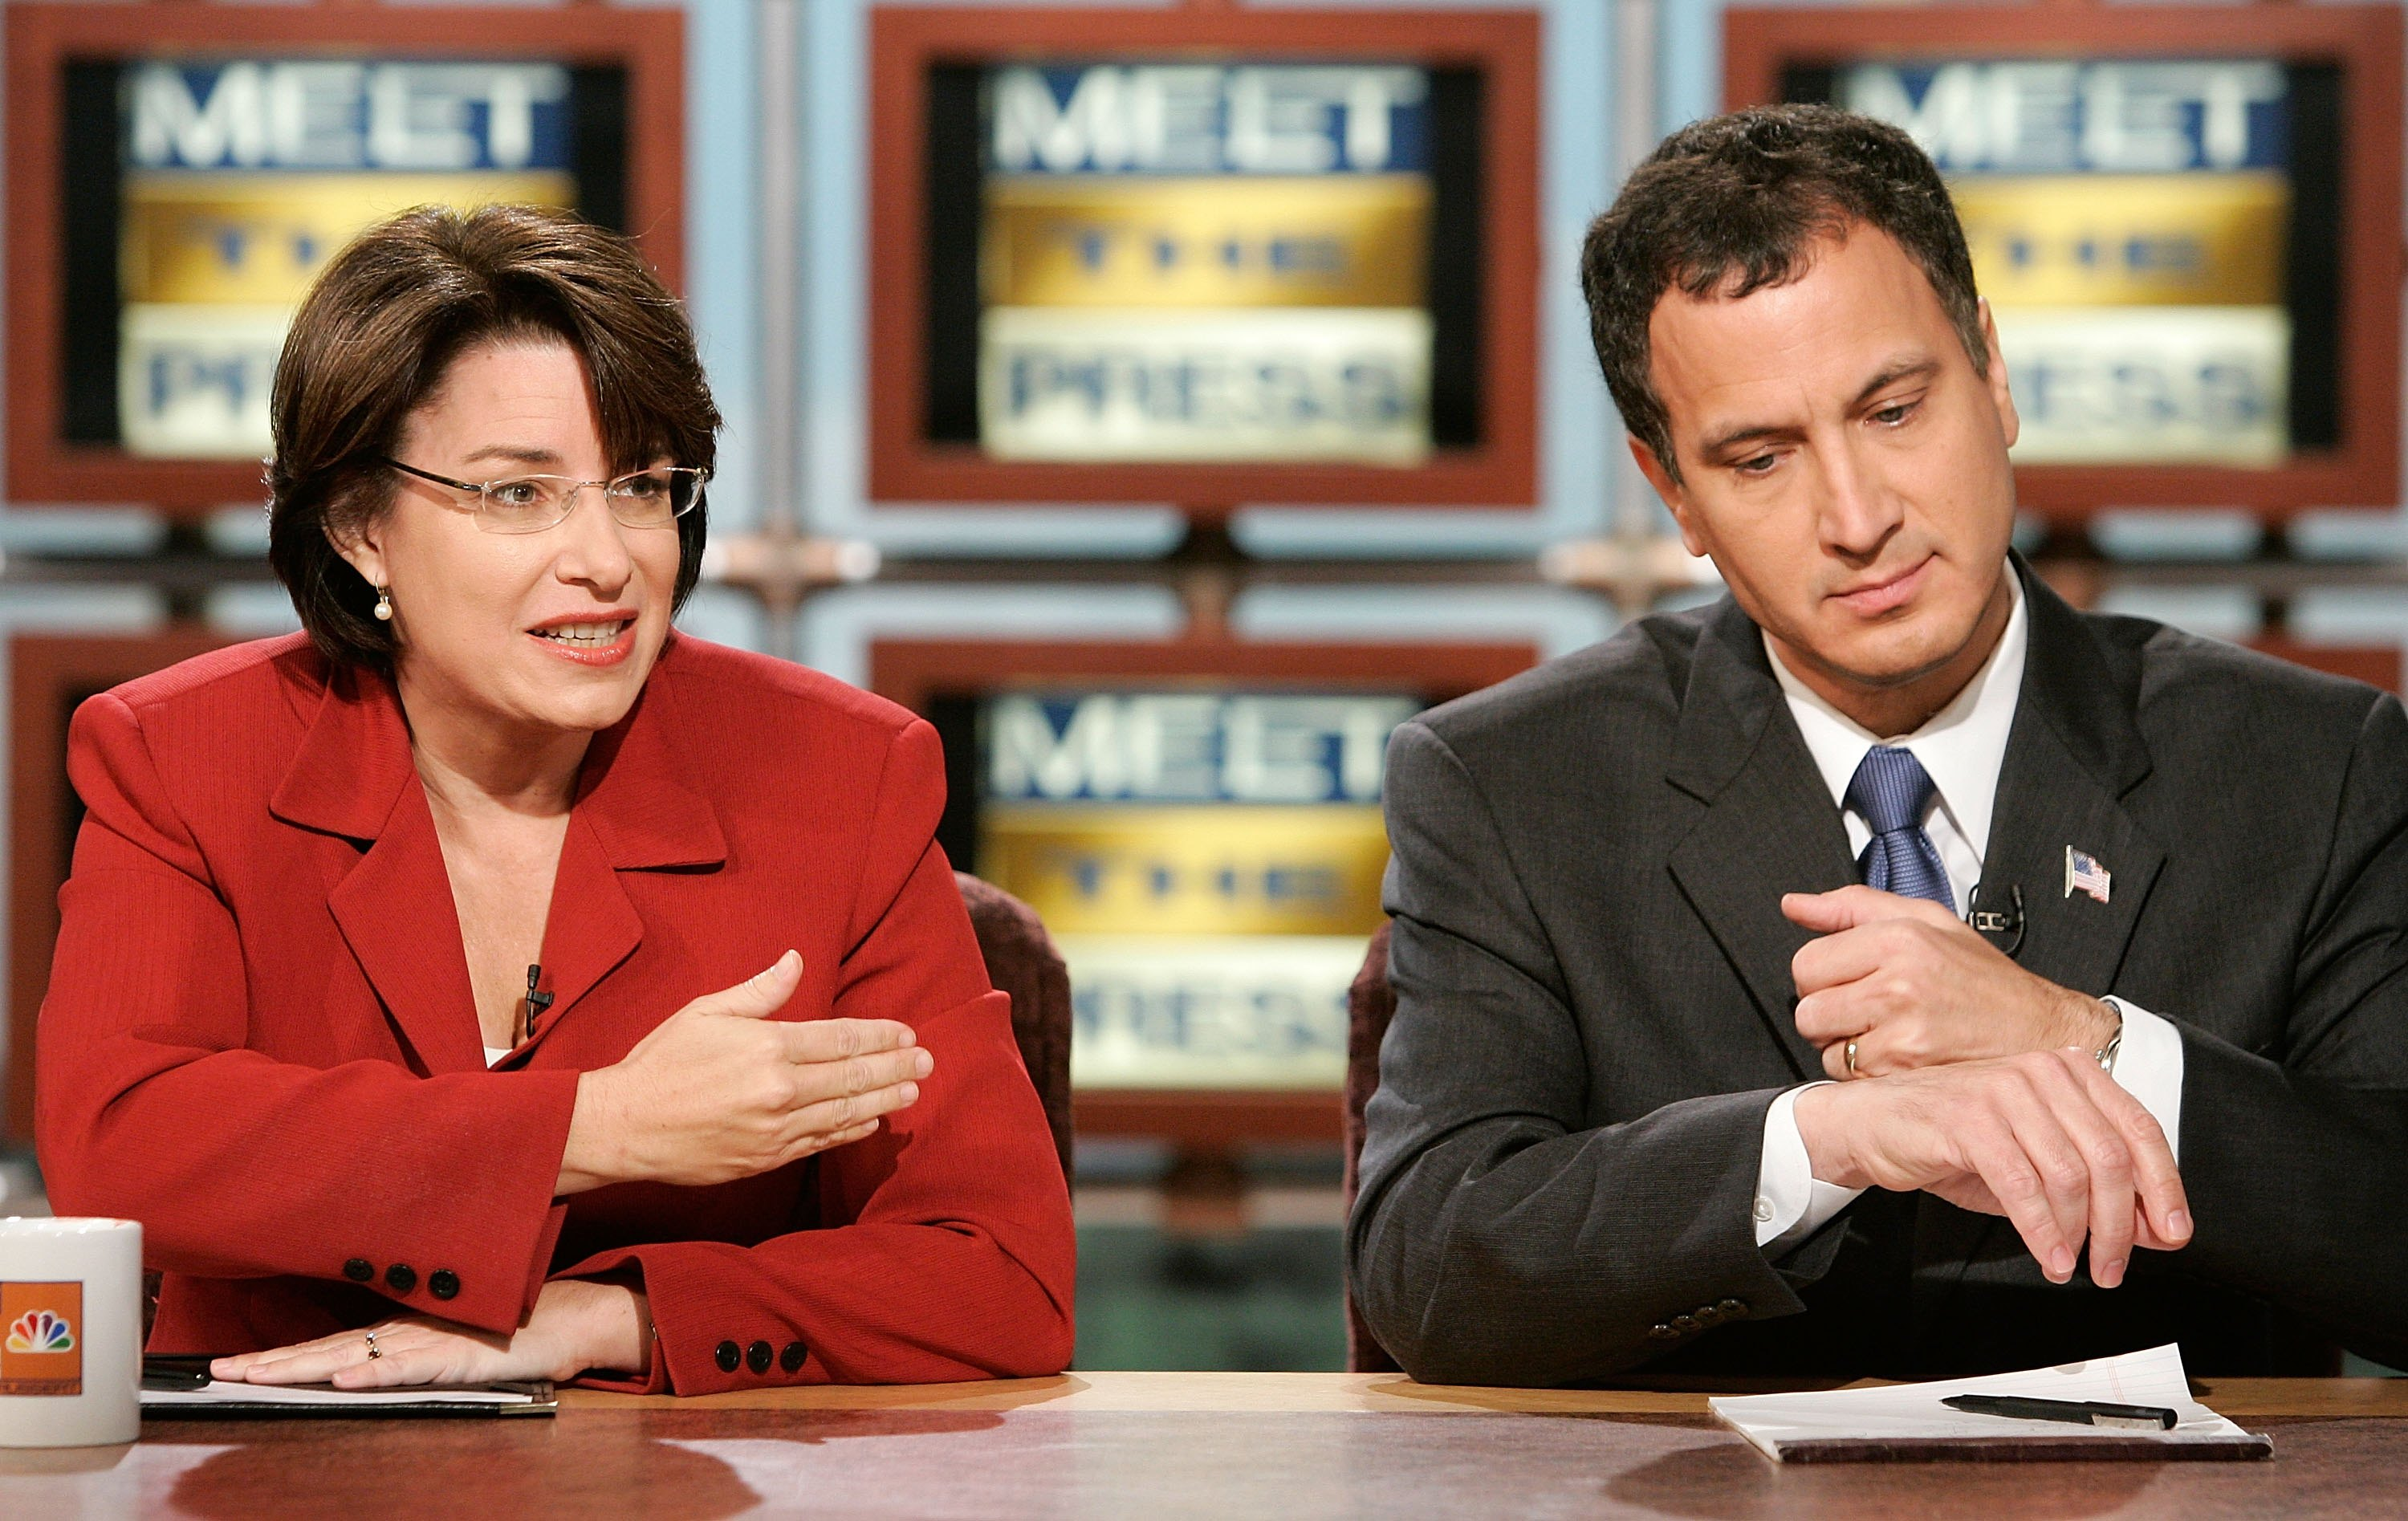 "WASHINGTON - OCTOBER 15: Democratic U.S. Senate candidate Amy Klobuchar and Republican U.S. Senate candidate Rep. Mark Kennedy (R-MN) participate in a debate on ""Meet the Press"" during a taping at the NBC studios October 15, 2006 in Washington, DC. Klobuchar and Kennedy are competing for the Senate seat vacant by retiring Sen. Mark Dayton (D-MN). (Photo by Alex Wong/Getty Images for Meet the Press)"